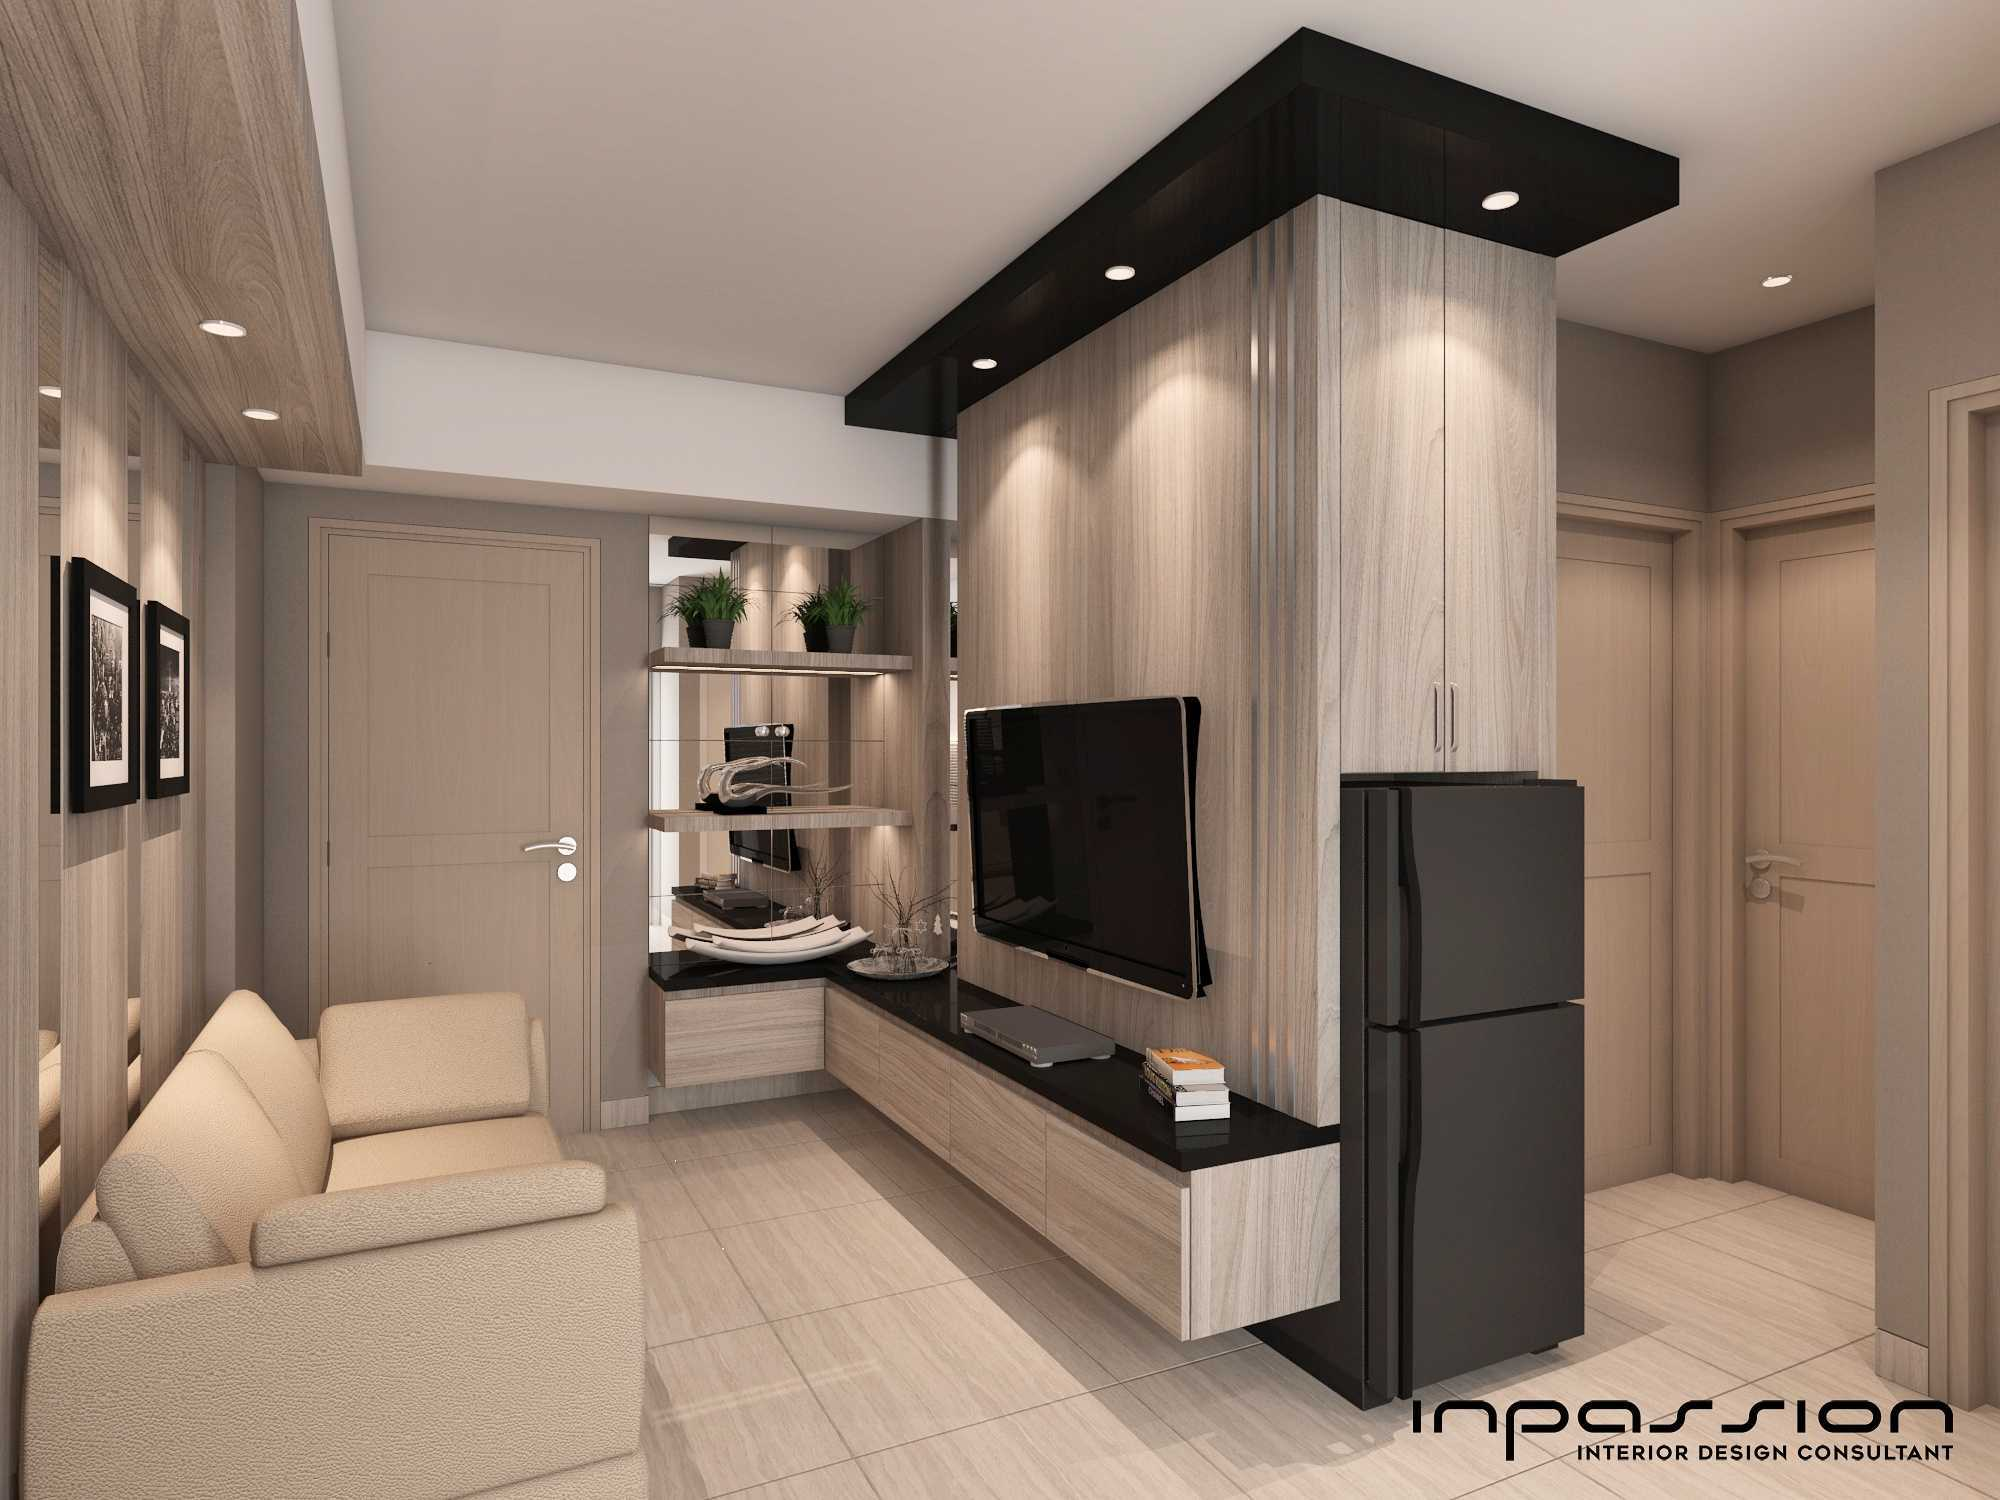 Inpassion Interior Design Educity Apartemen 3 Bedroom Surabaya City, East Java, Indonesia Surabaya City, East Java, Indonesia Img20170428184519577 Kontemporer  31359